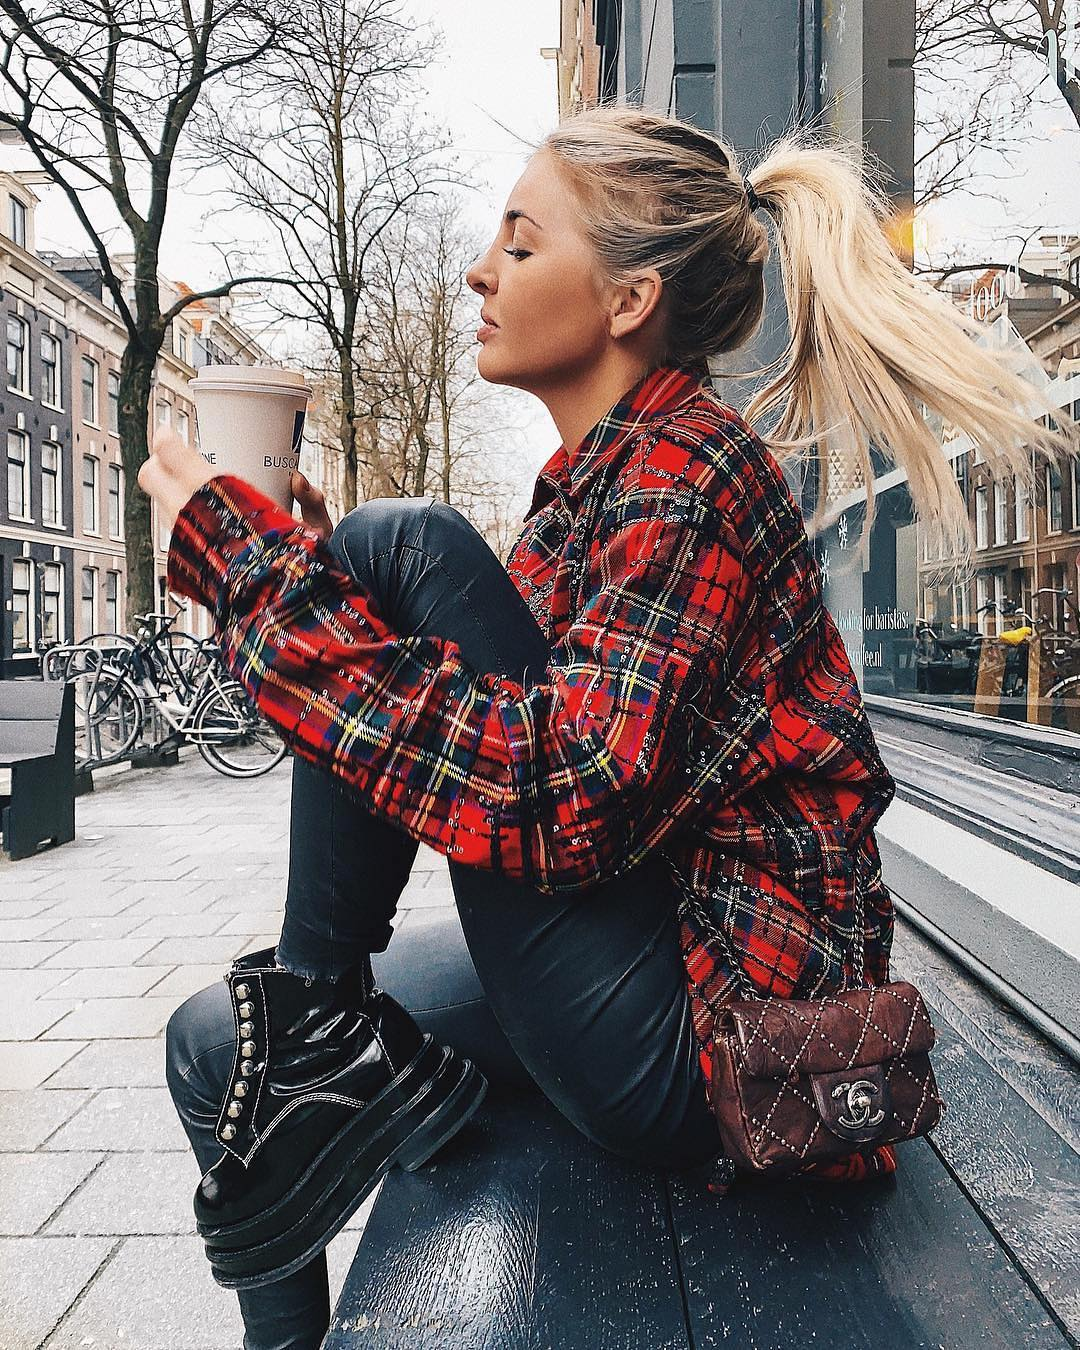 Modern Grunge Essentials: Plaid Red Shirt, Black Leather Pants And Platform Leather Boots 2020